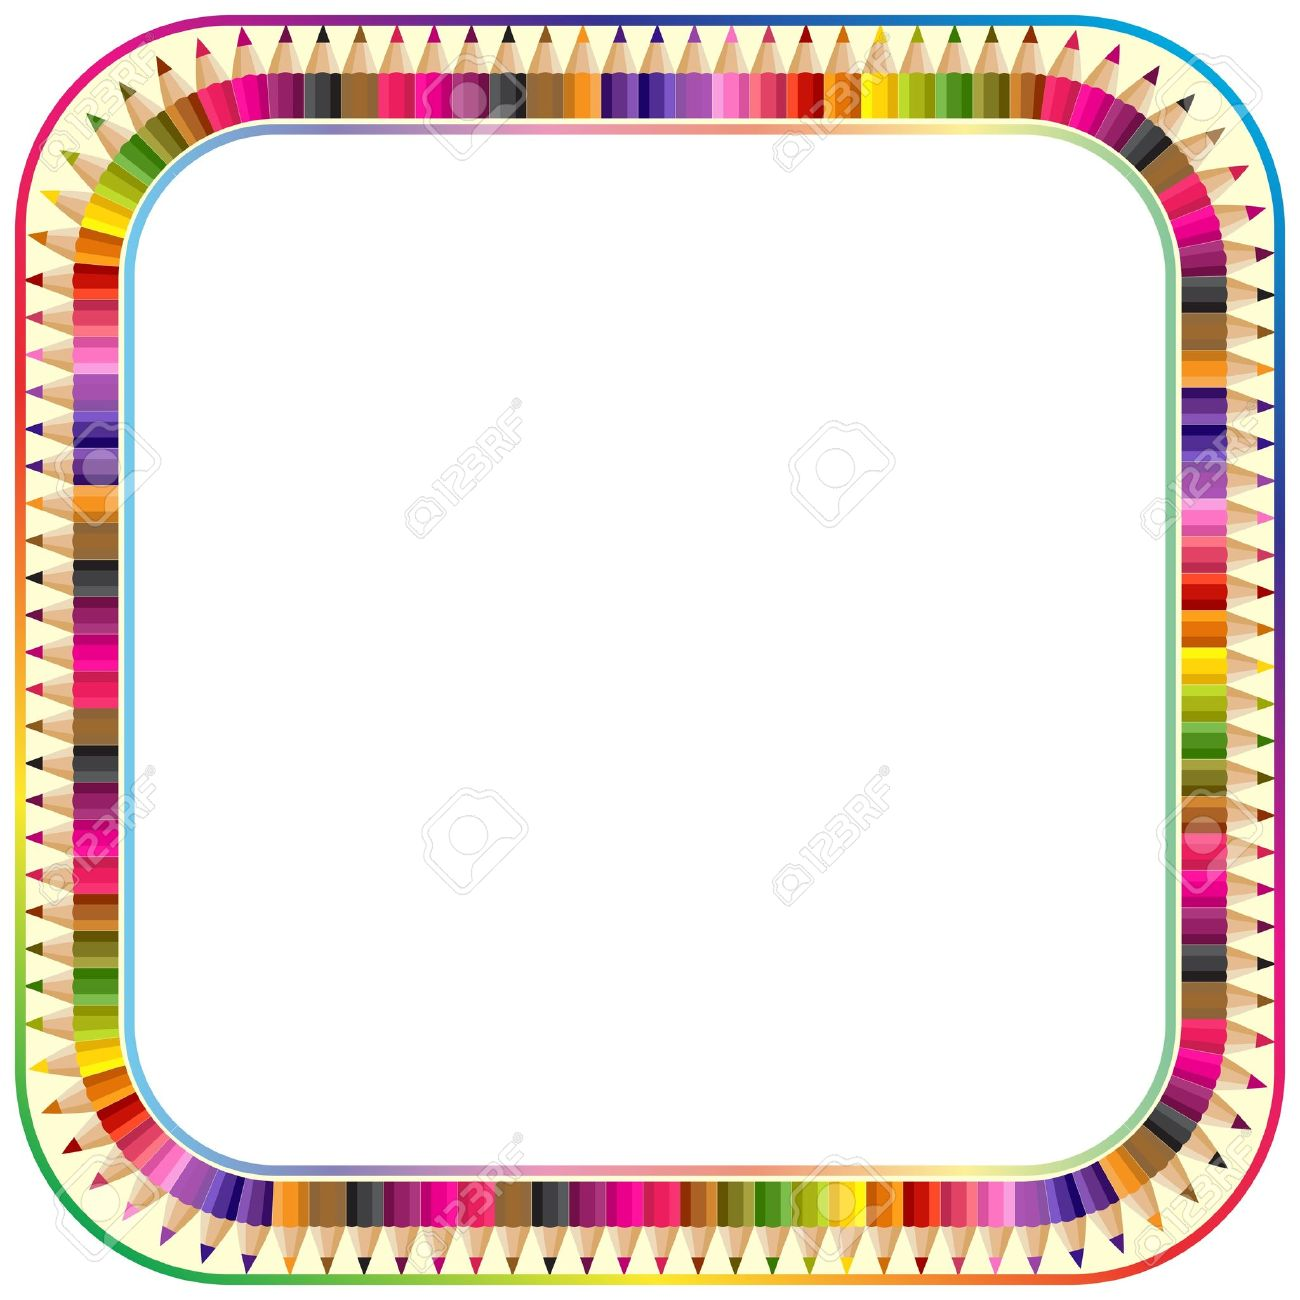 frame made from color pencils version with round corner royalty rh 123rf com Colorful Borders Colorful Borders